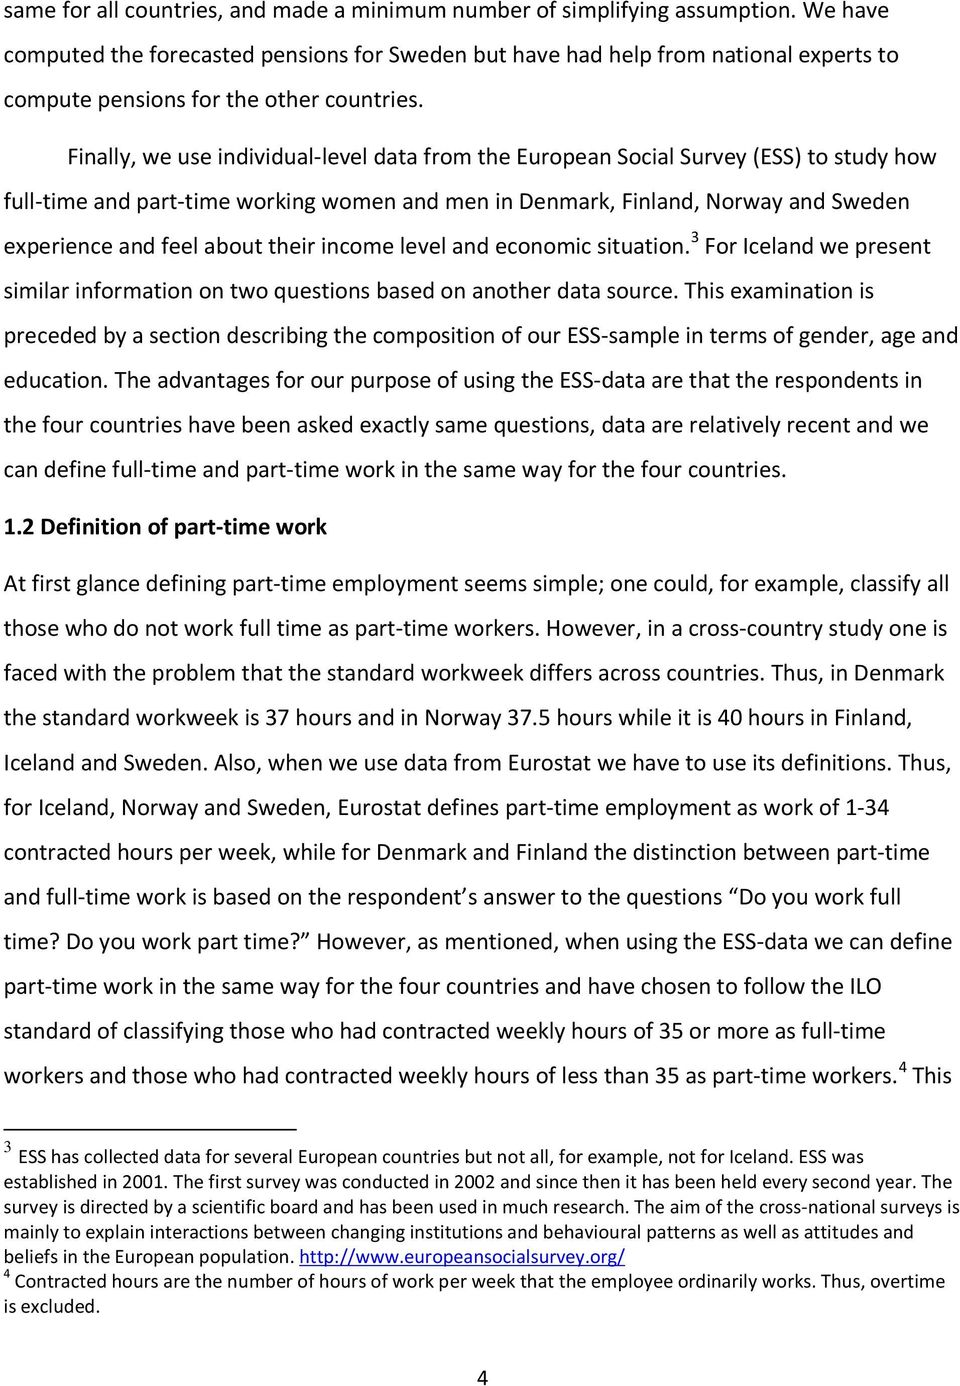 Finally, we use individual-level data from the European Social Survey (ESS) to study how full-time and part-time working women and men in Denmark, Finland, Norway and Sweden experience and feel about